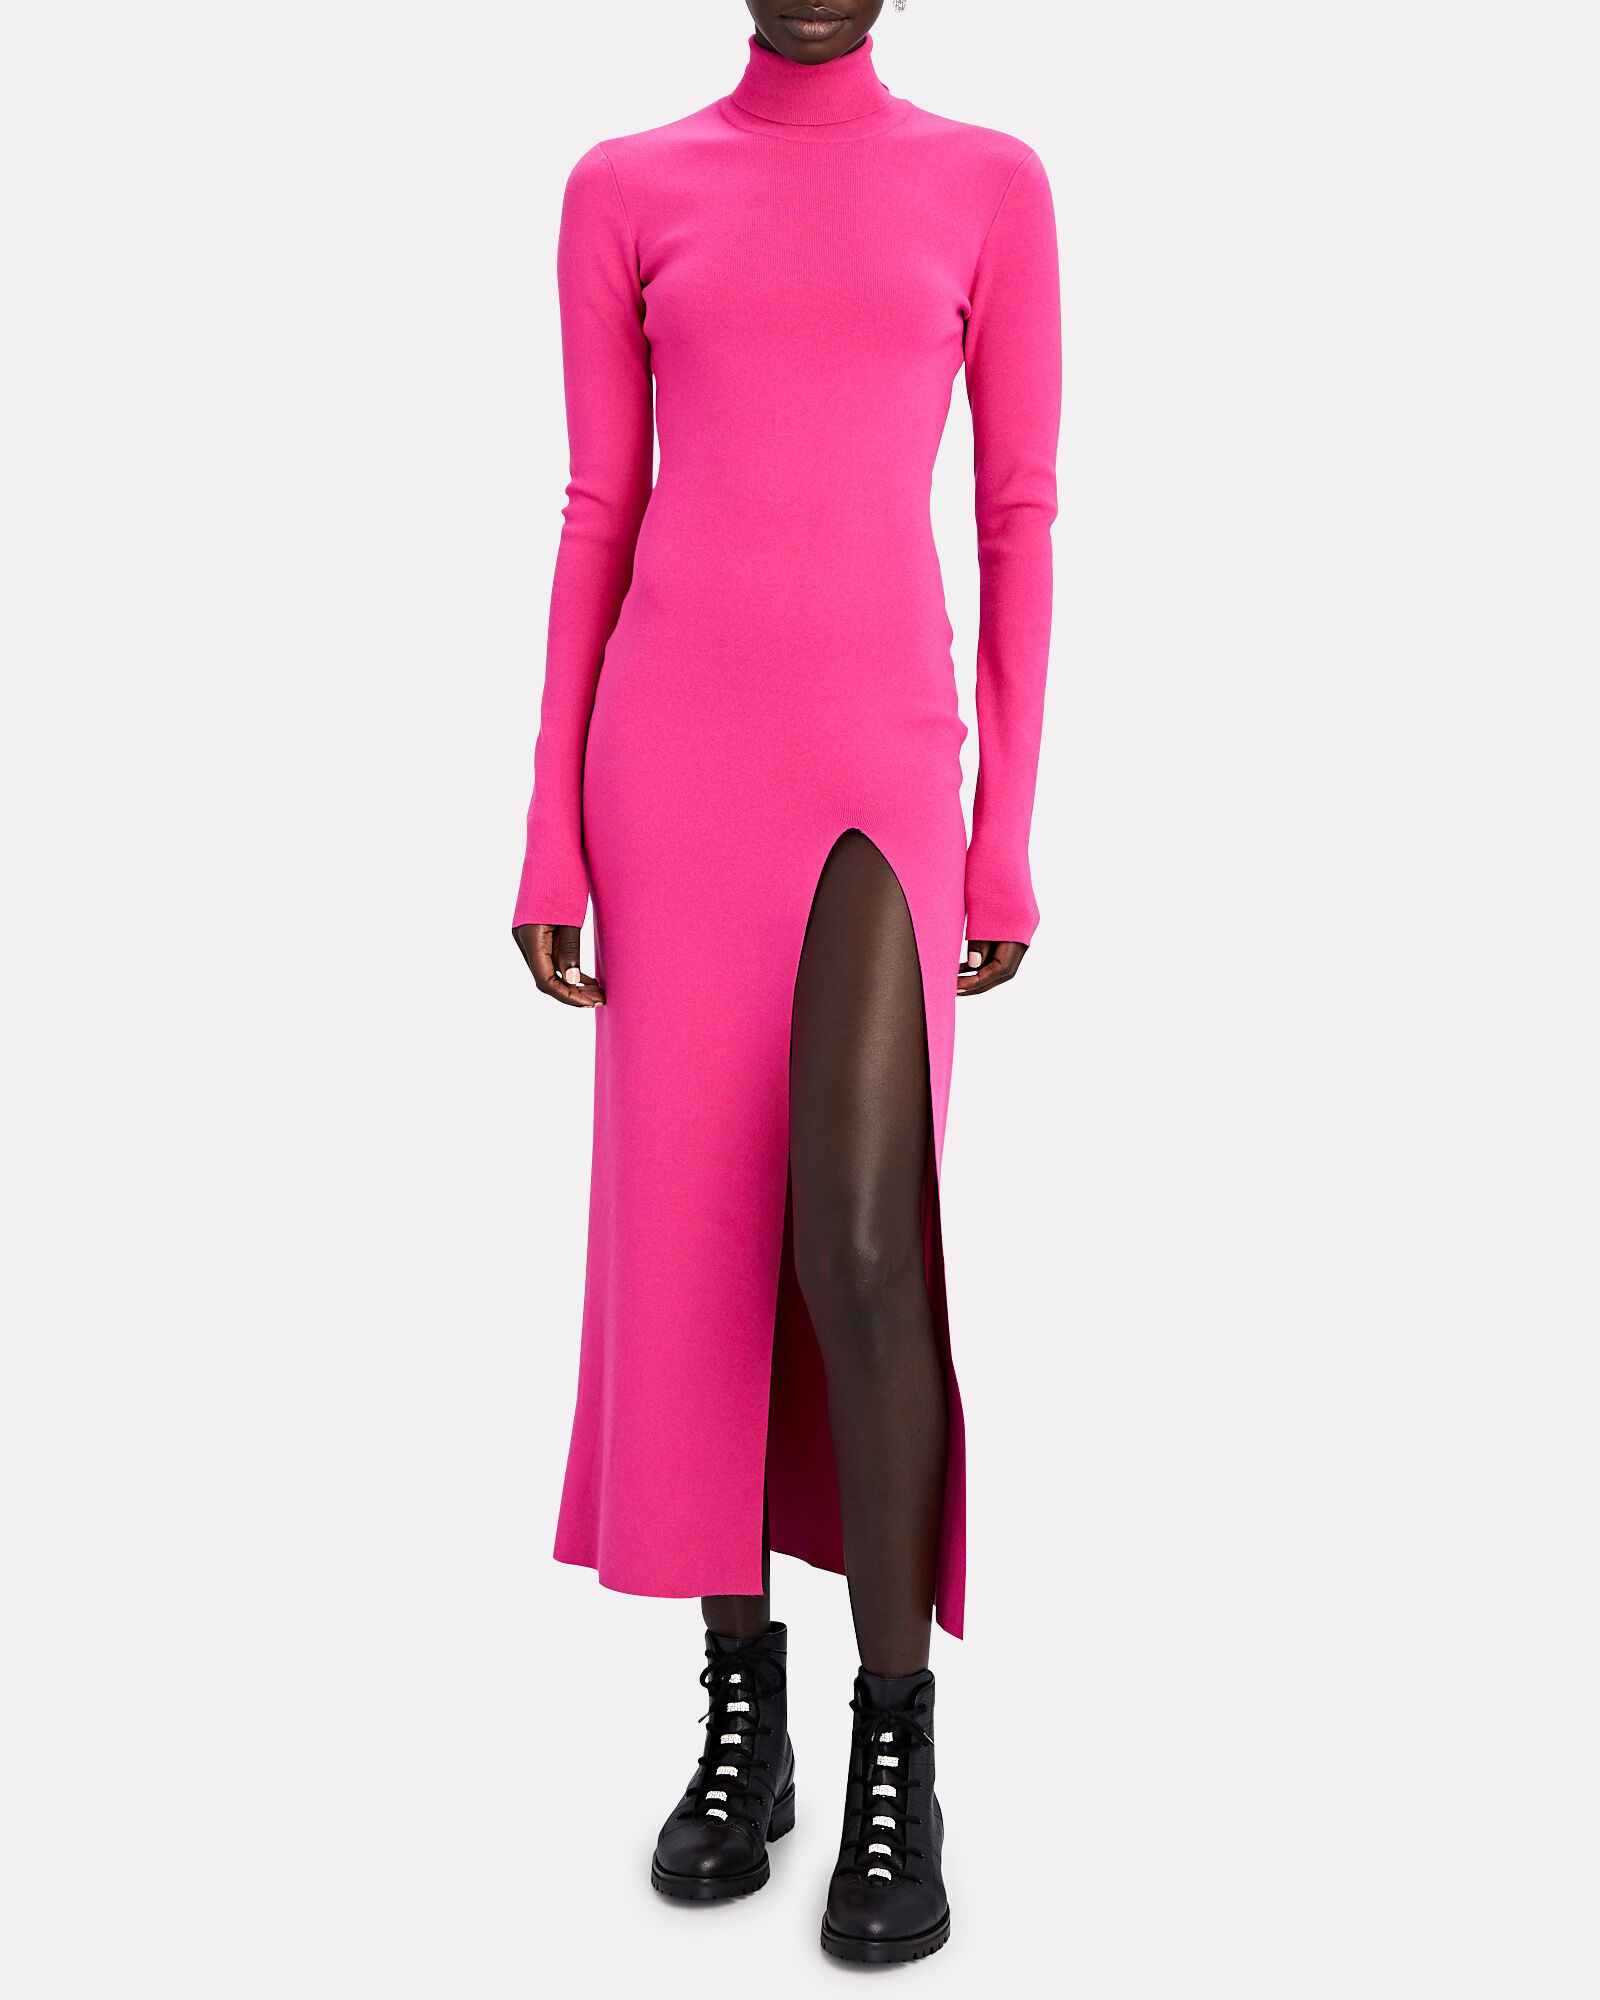 Turtleneck Rib Knit Midi Dress, PINK, hi-res